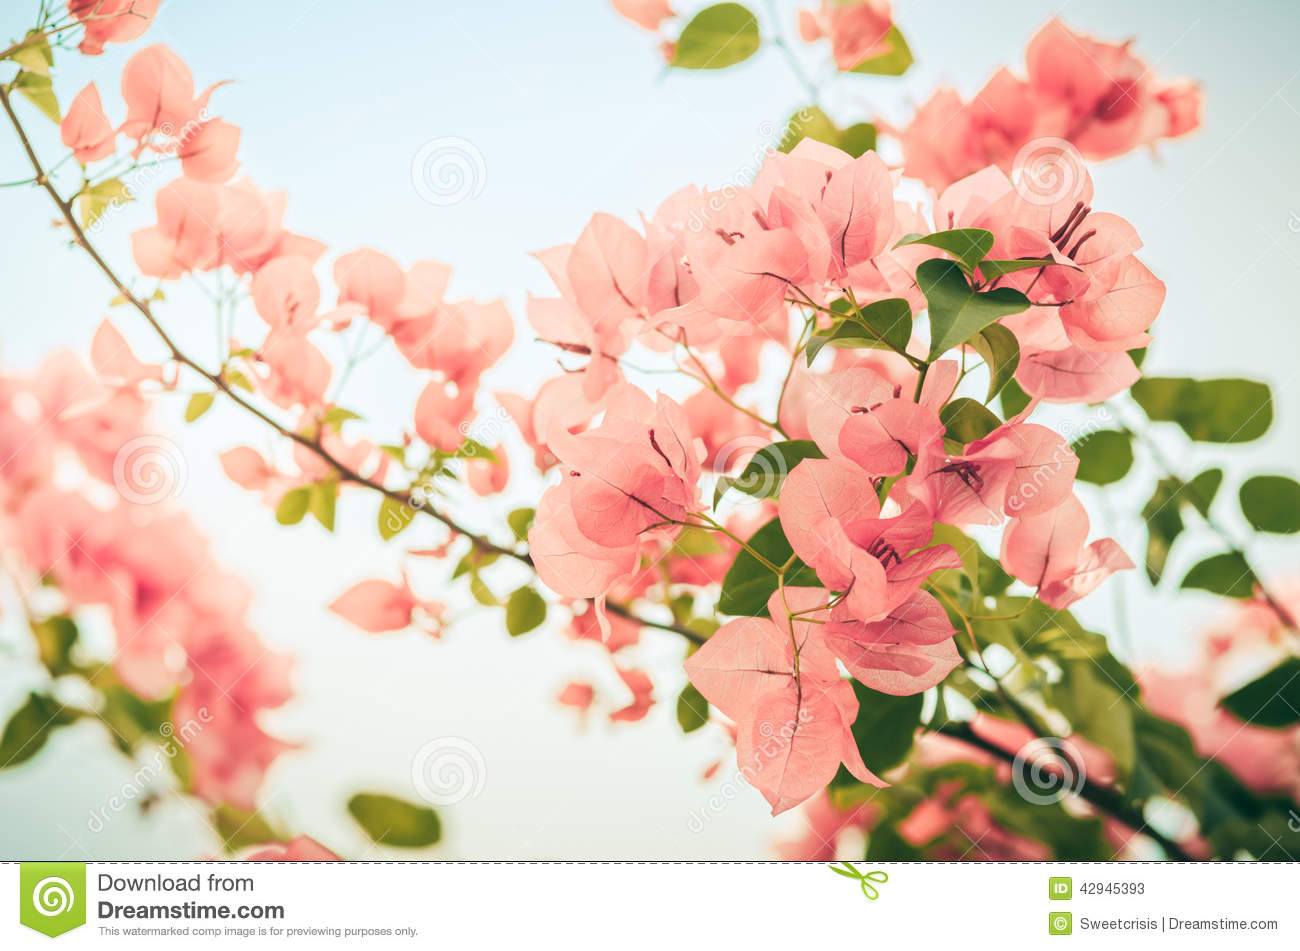 Paper flowers or bougainvillea vintage stock image image of paper flowers or bougainvillea vintage colorful growth mightylinksfo